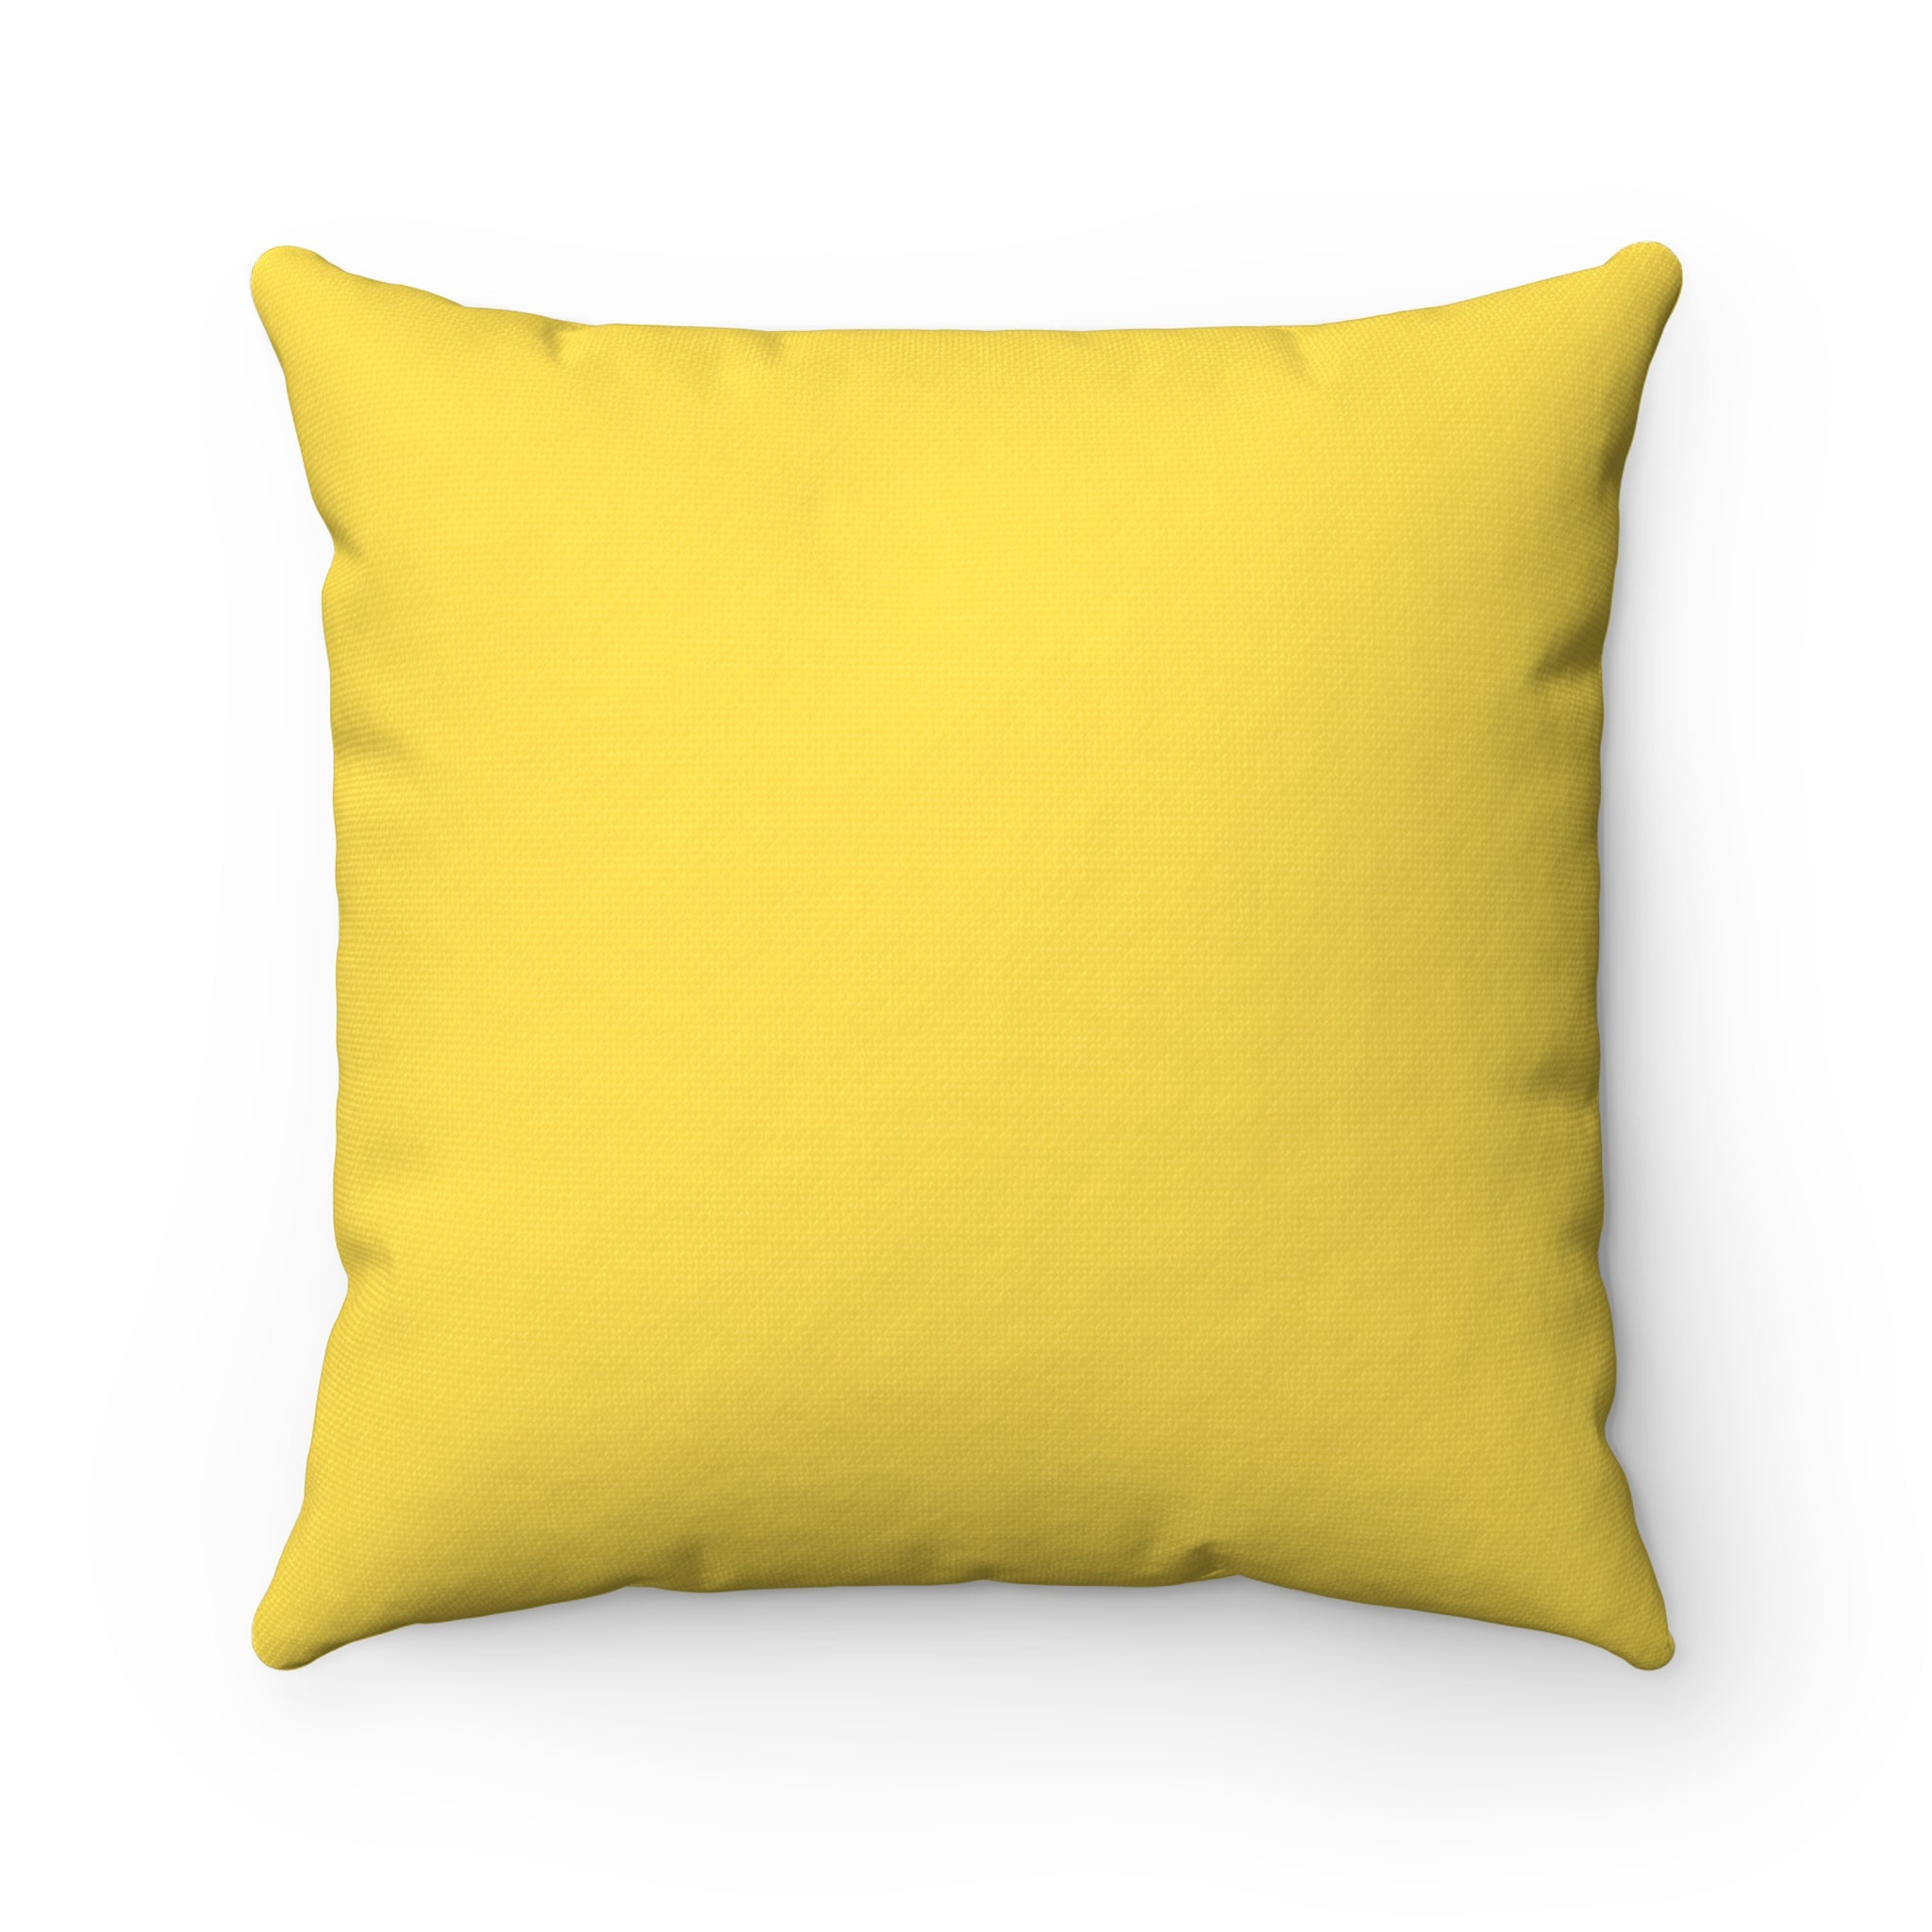 Yellow Spun Polyester Square Pillow